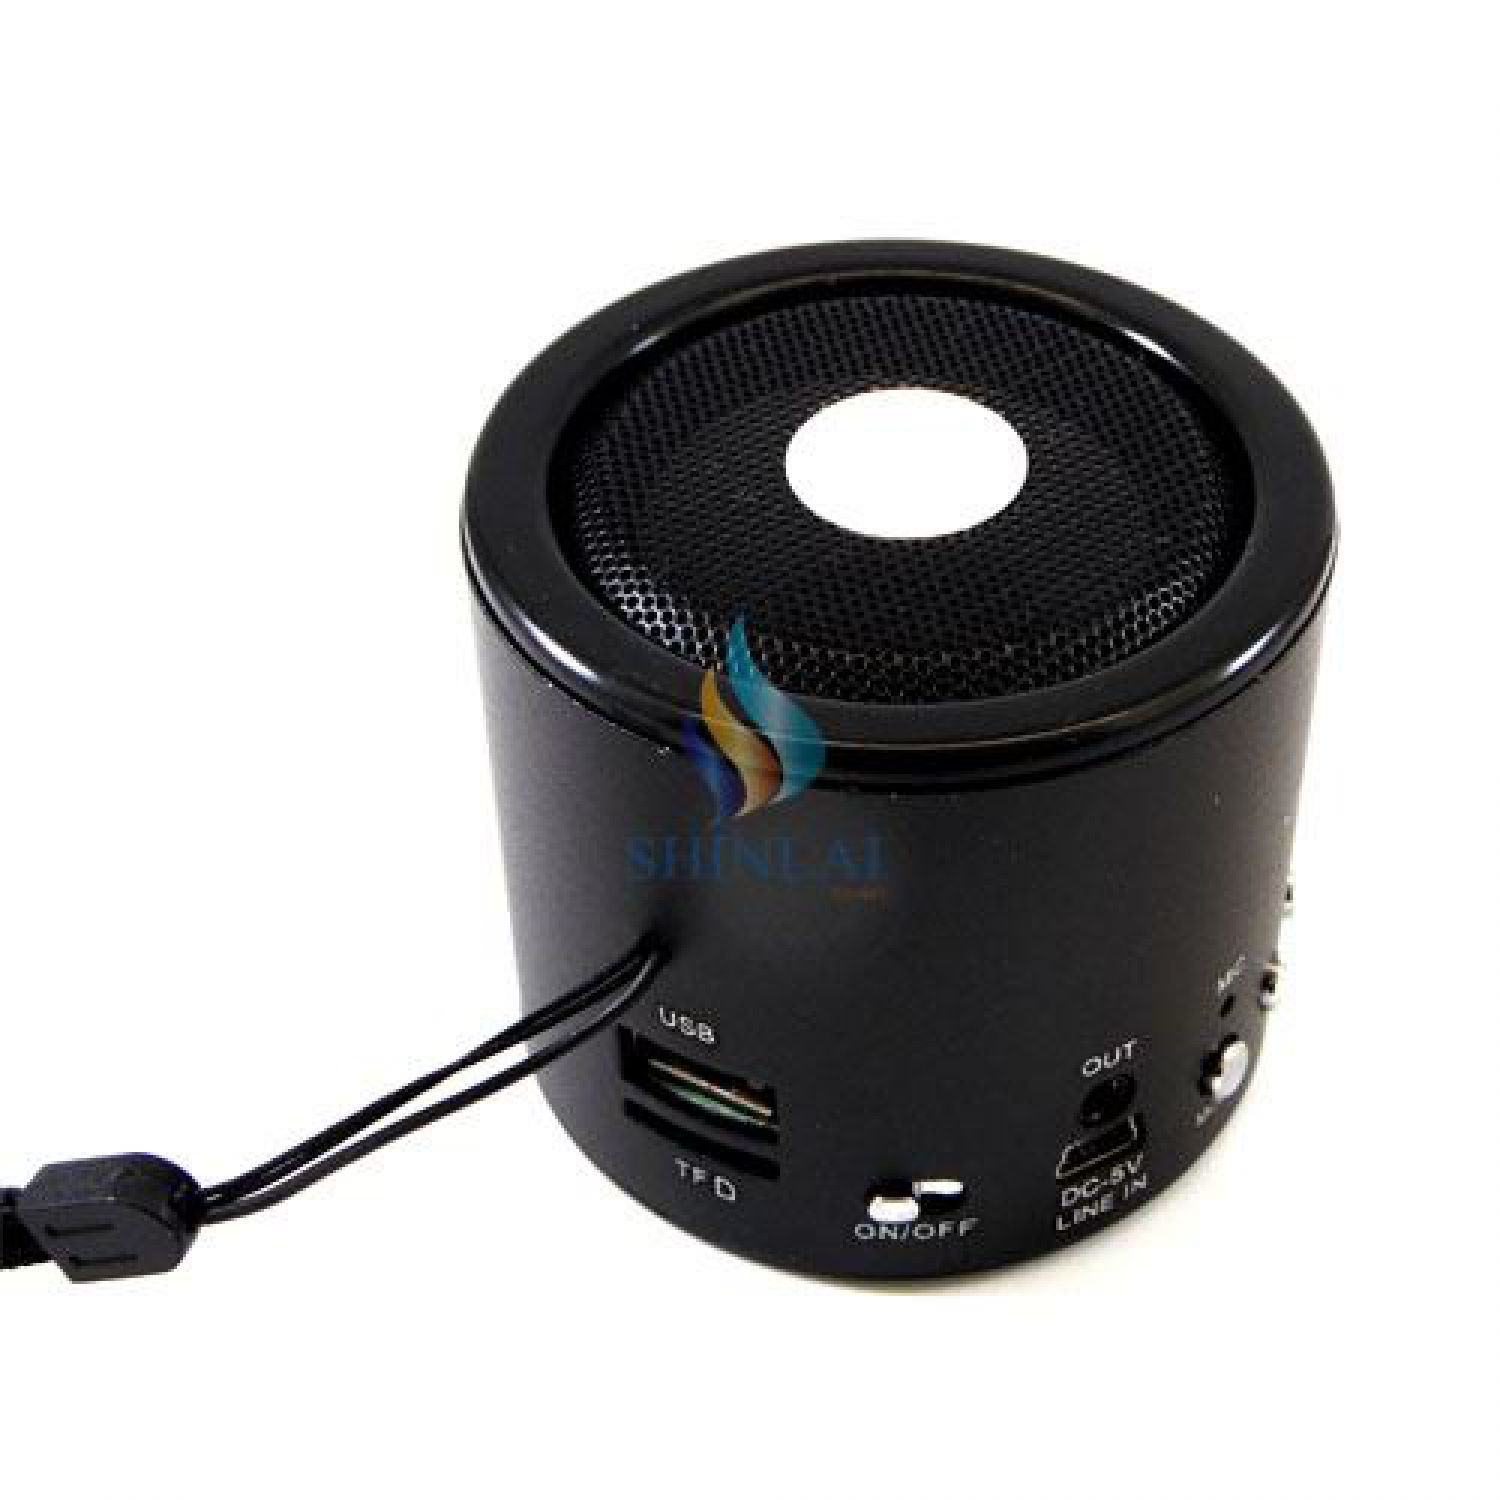 ws q9 mini bluetooth lautsprecher usb stereo speaker mp3 radio musik player ebay. Black Bedroom Furniture Sets. Home Design Ideas